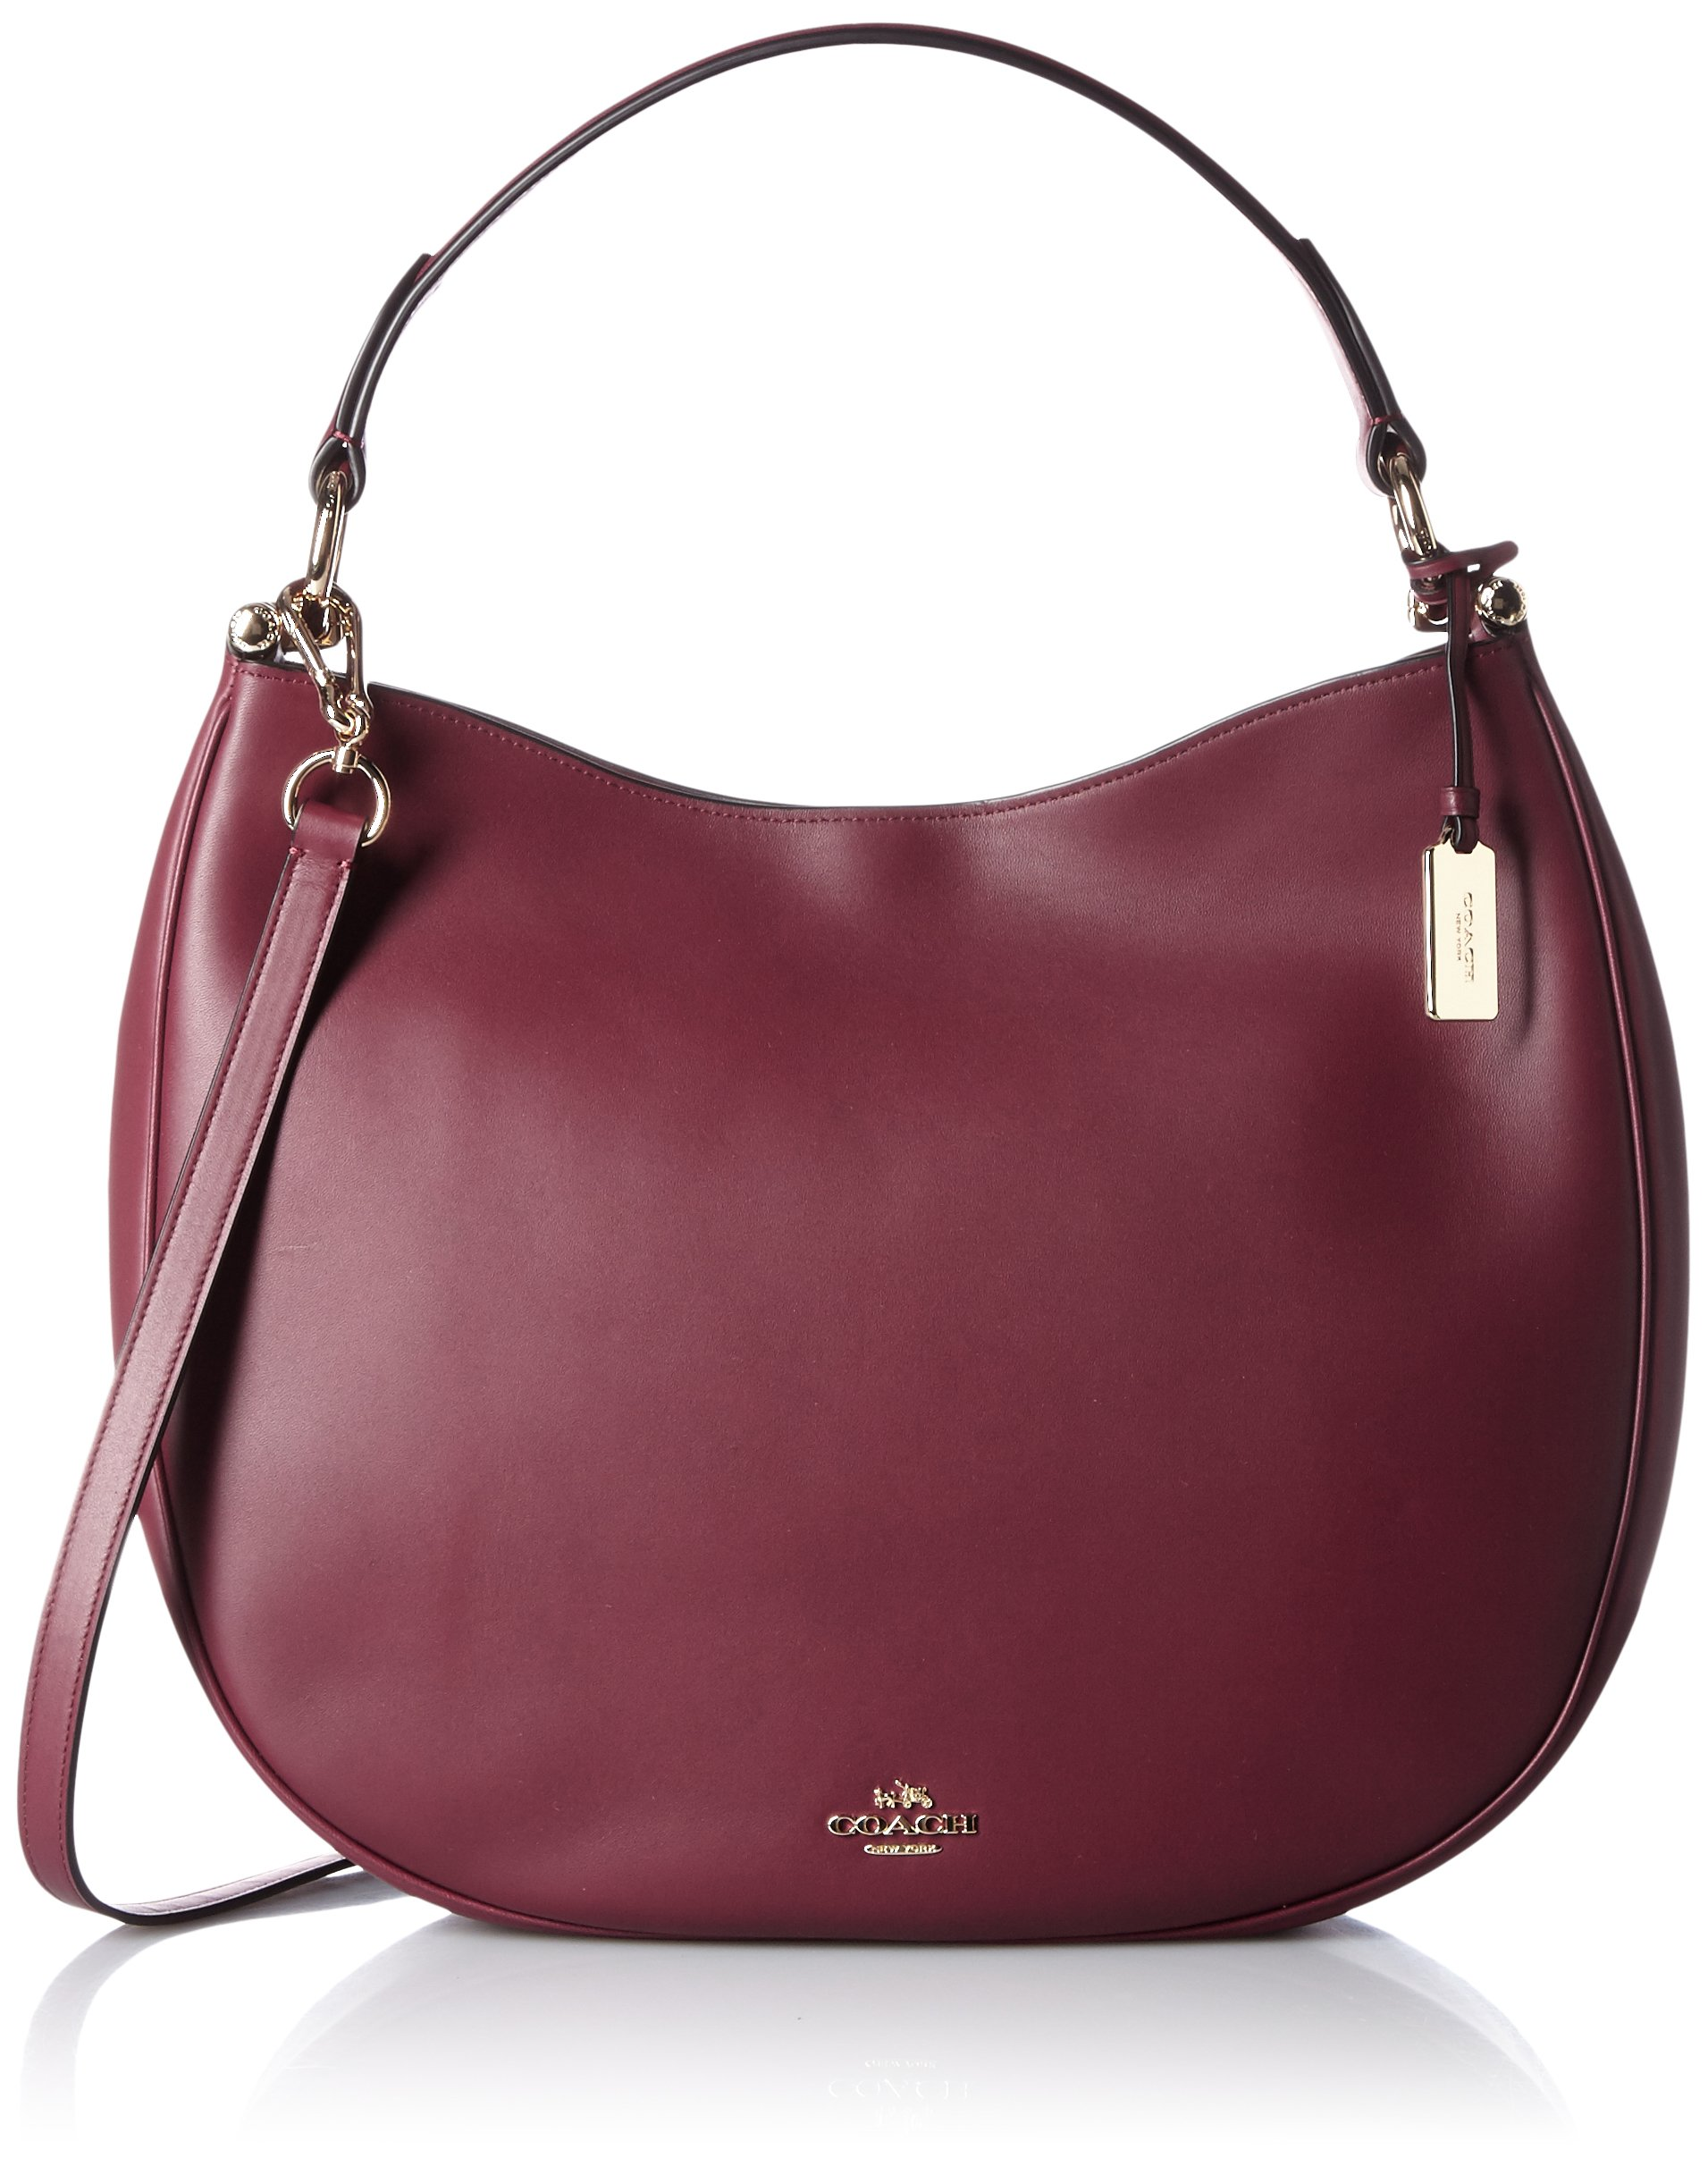 COACH Women's Natural Calf Nomad Hobo LI/Burgundy Hobo